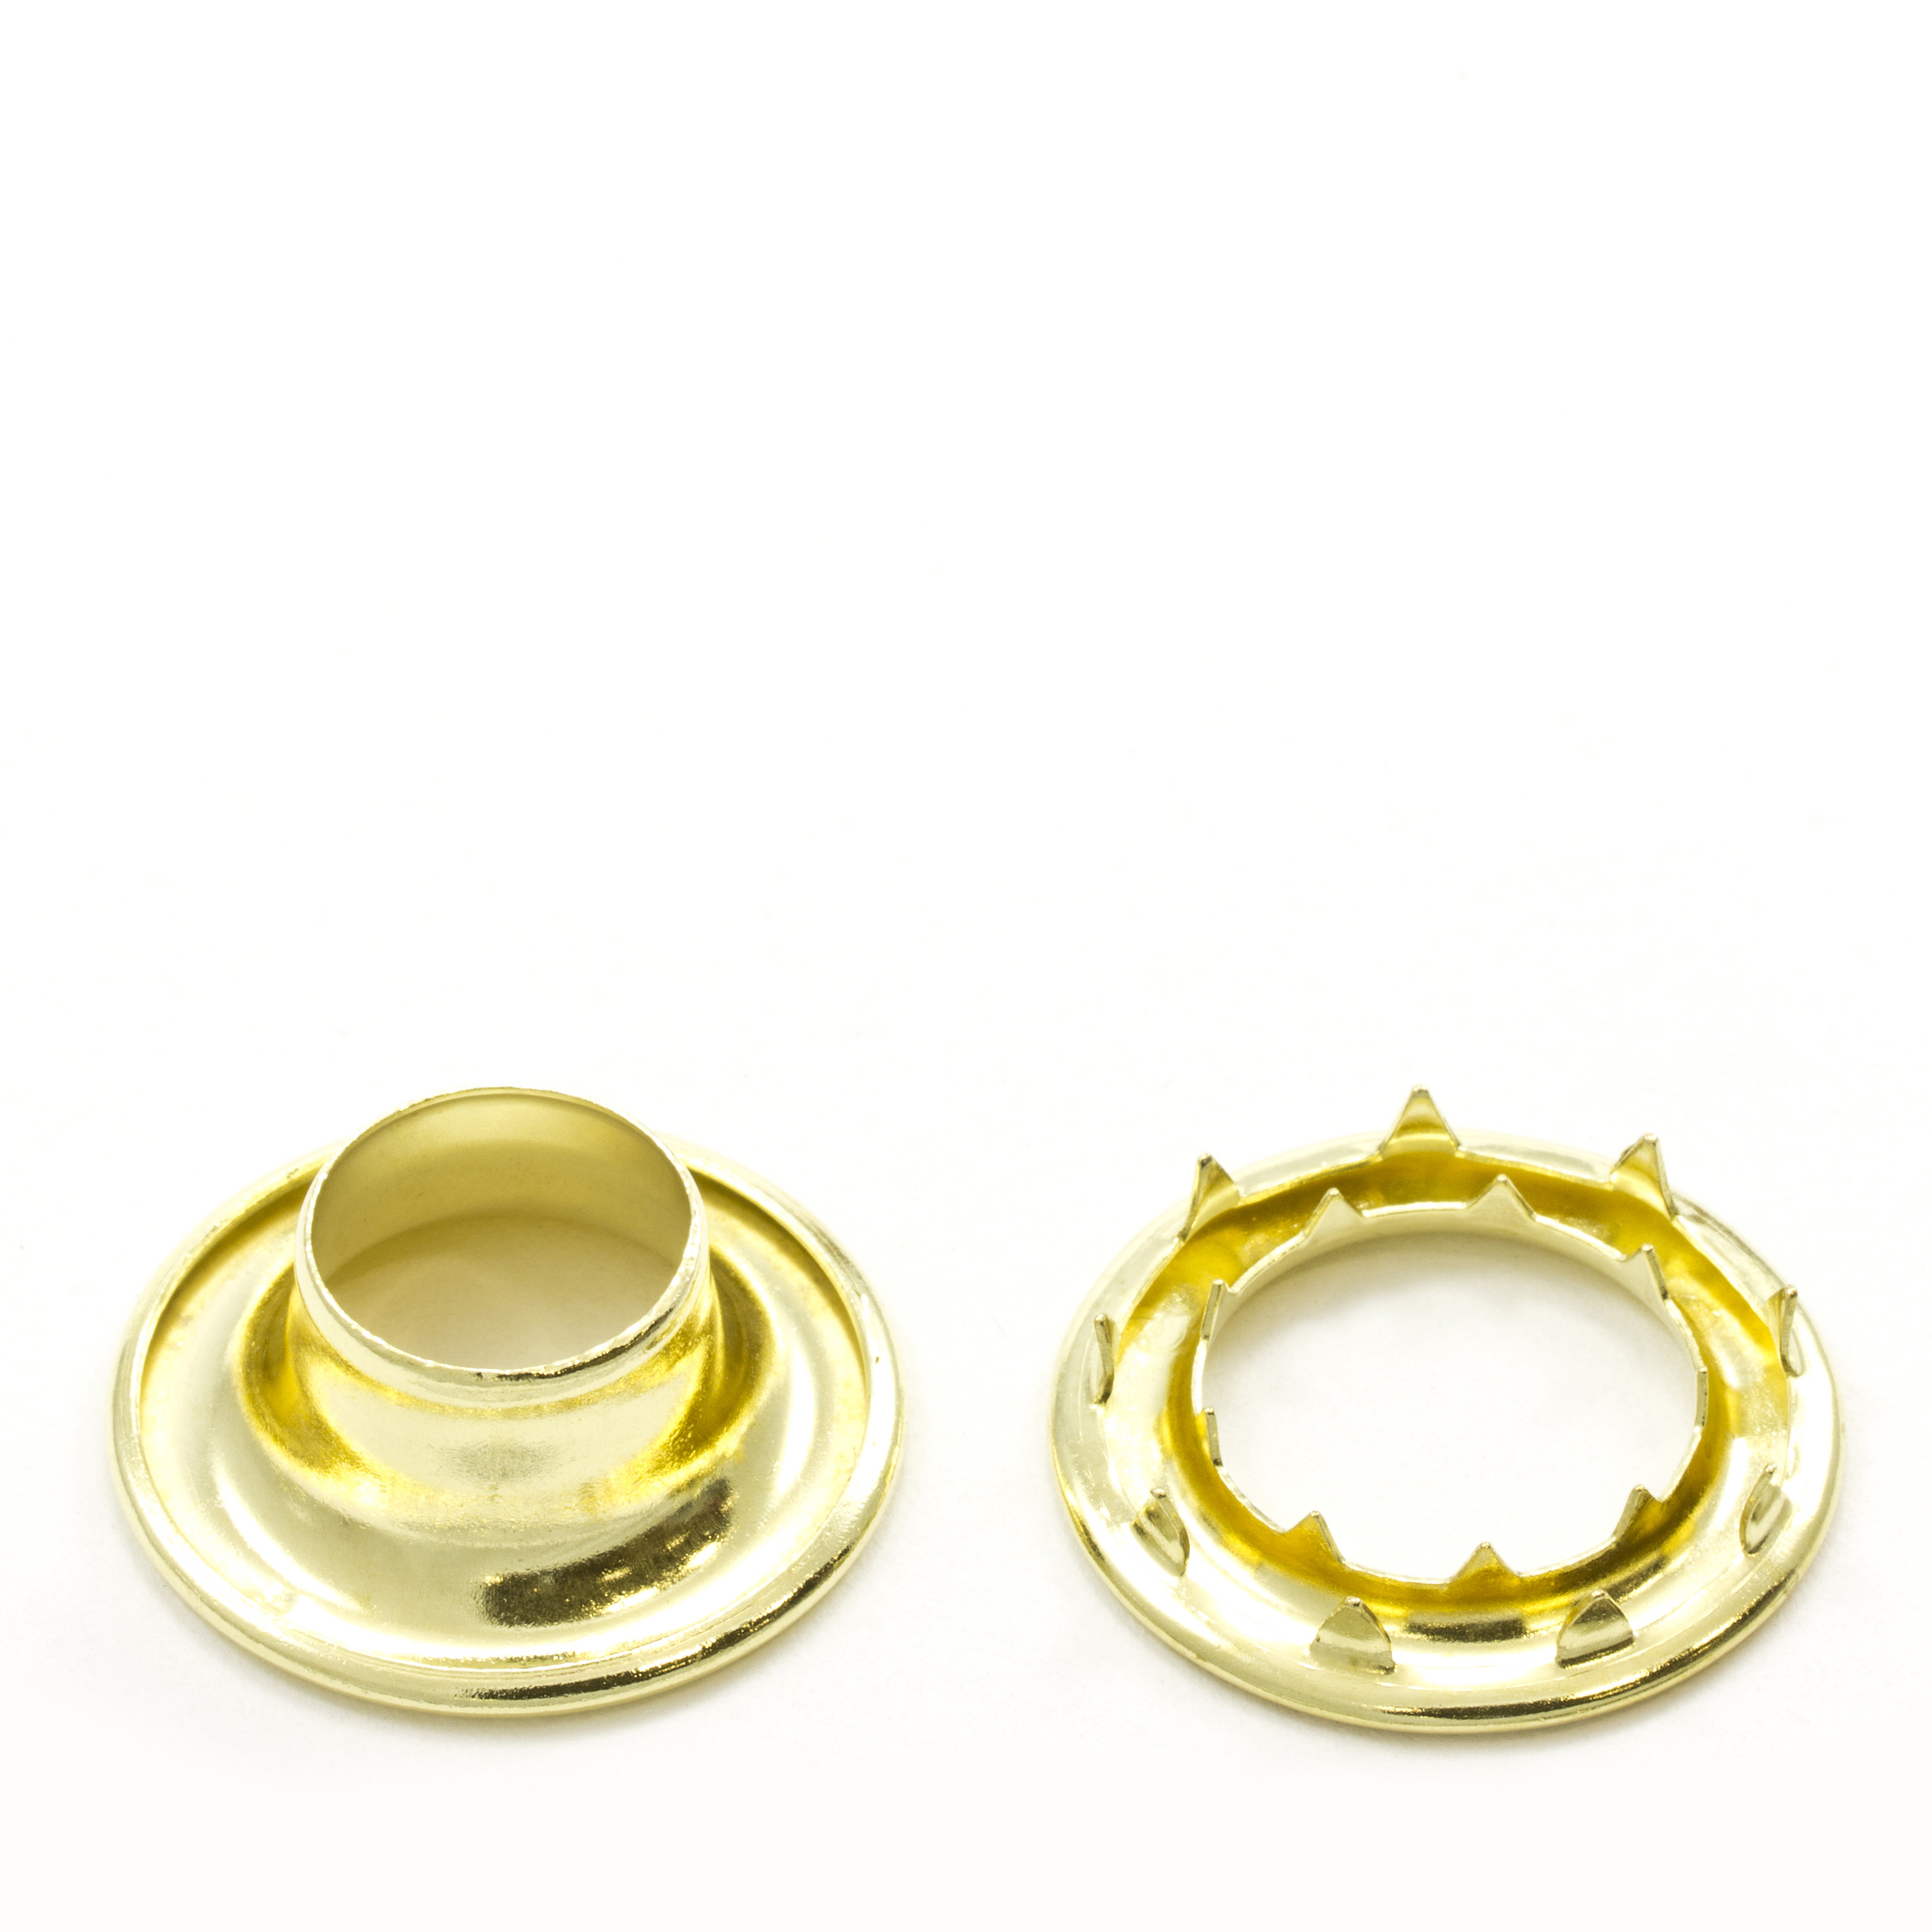 Rolled Rim Grommet with Spur Washer #5 Brass 5/8